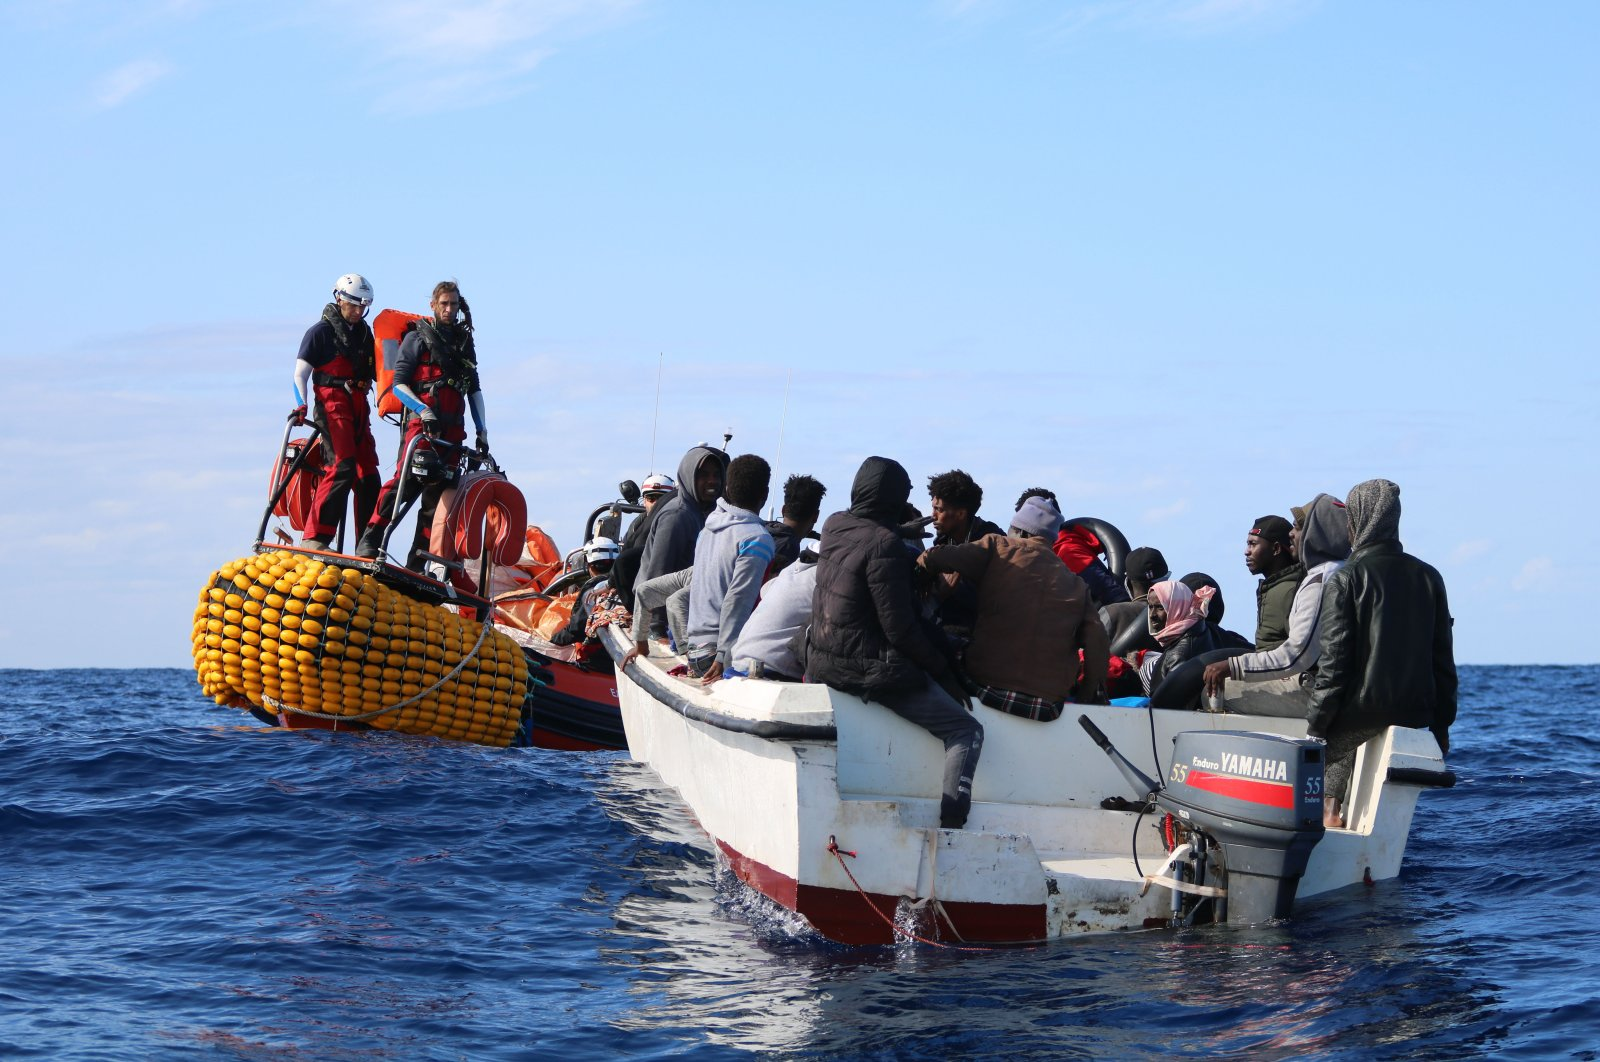 SOS Mediterranee team members from the humanitarian ship Ocean Viking approach a boat in distress with 30 people on board in the waters off Libya, Nov. 20, 2019. (AP Photo)